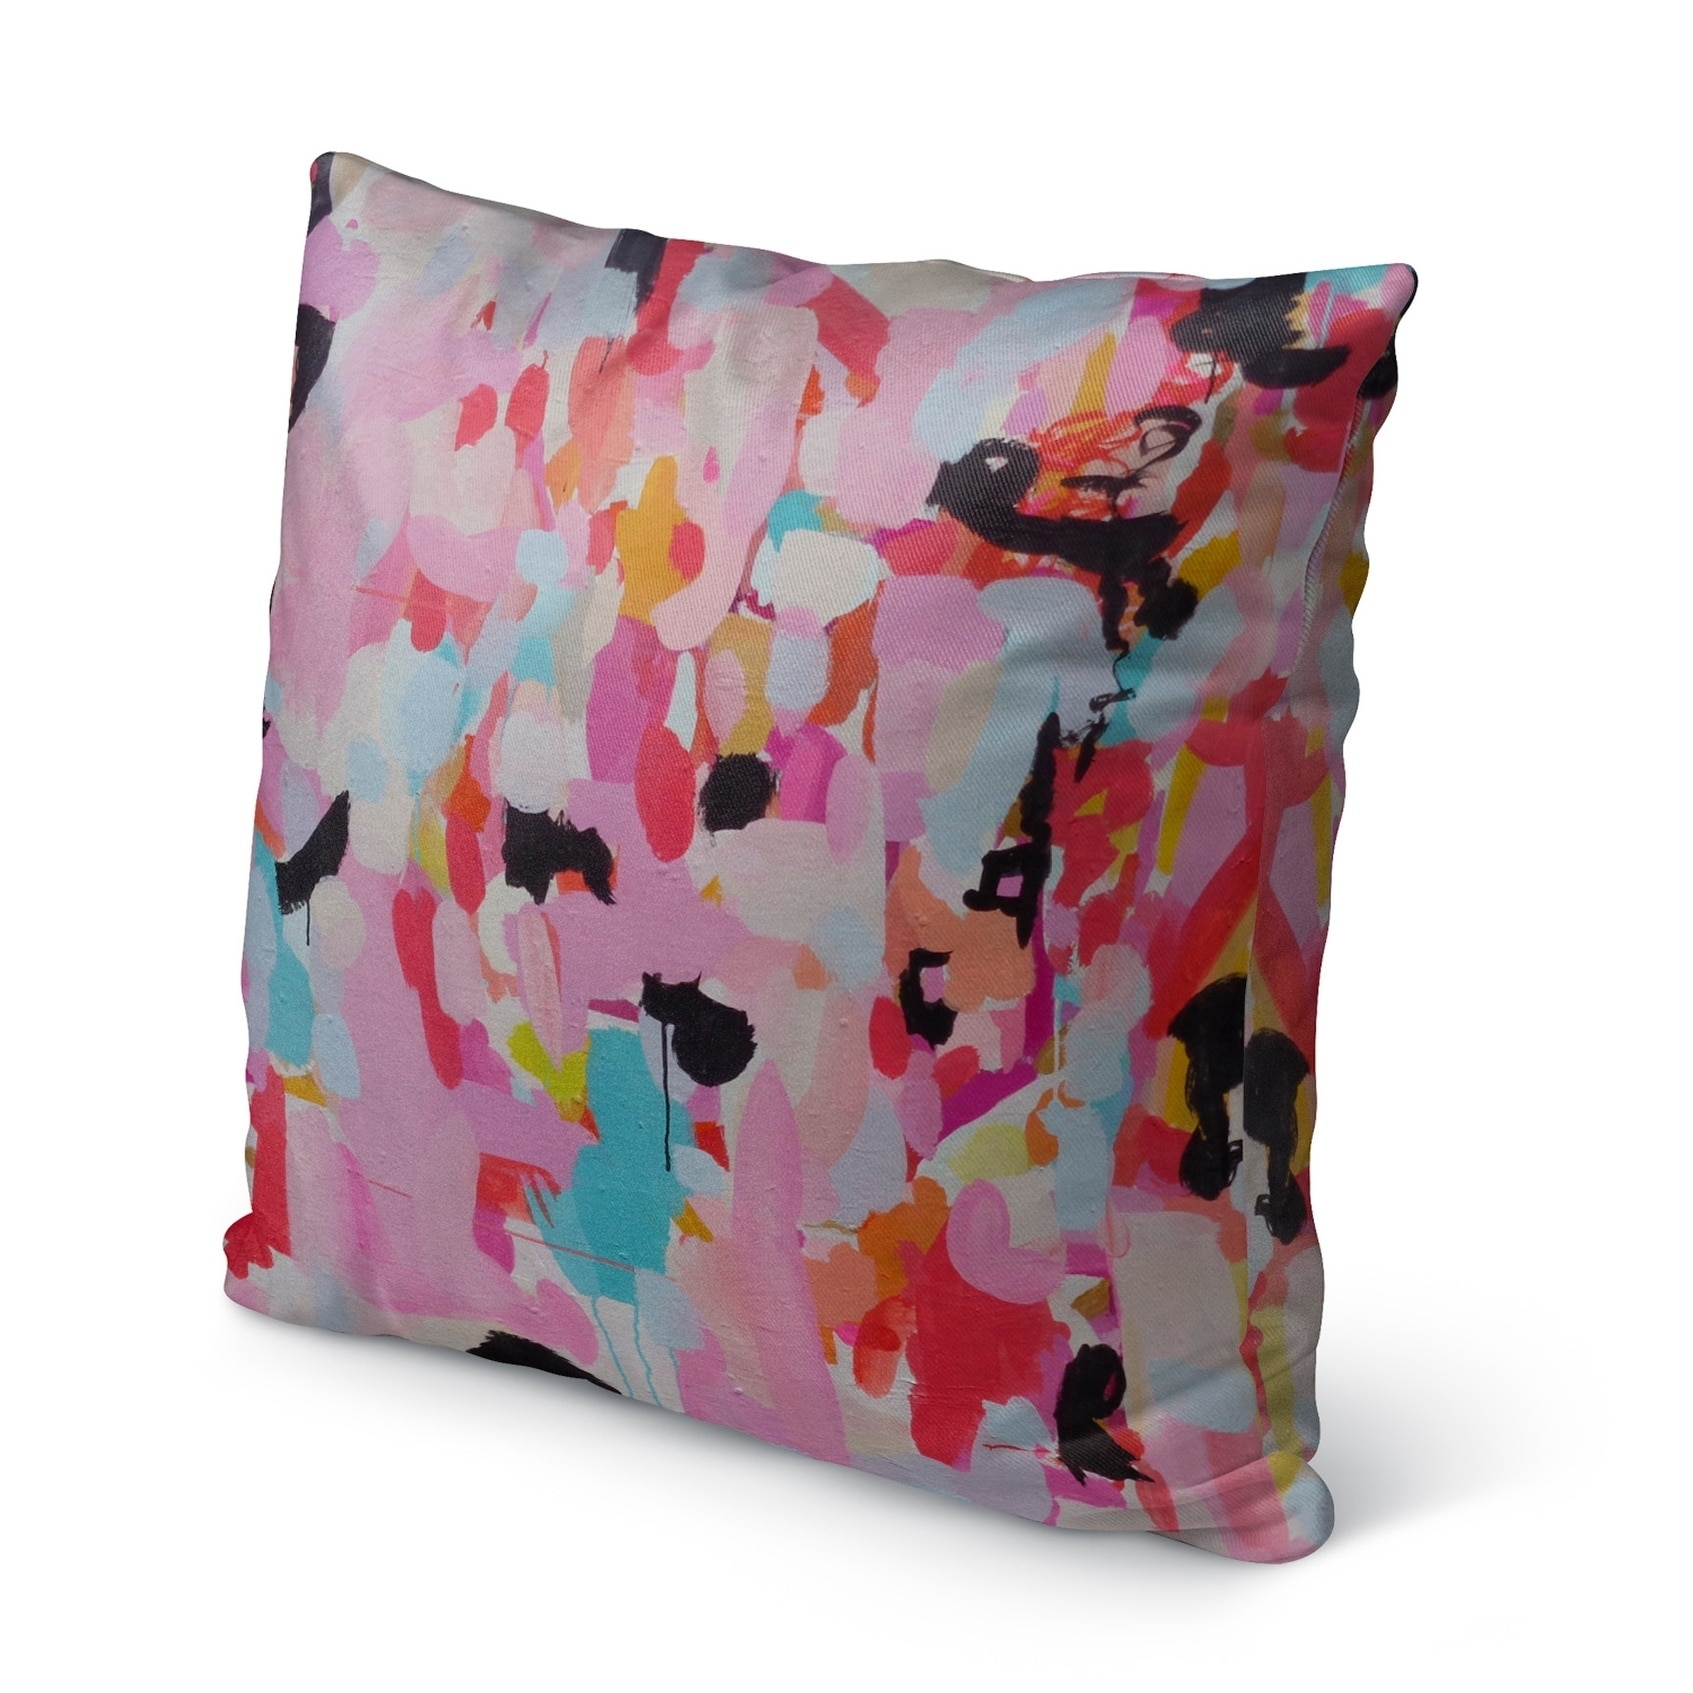 Throw Pillows Online